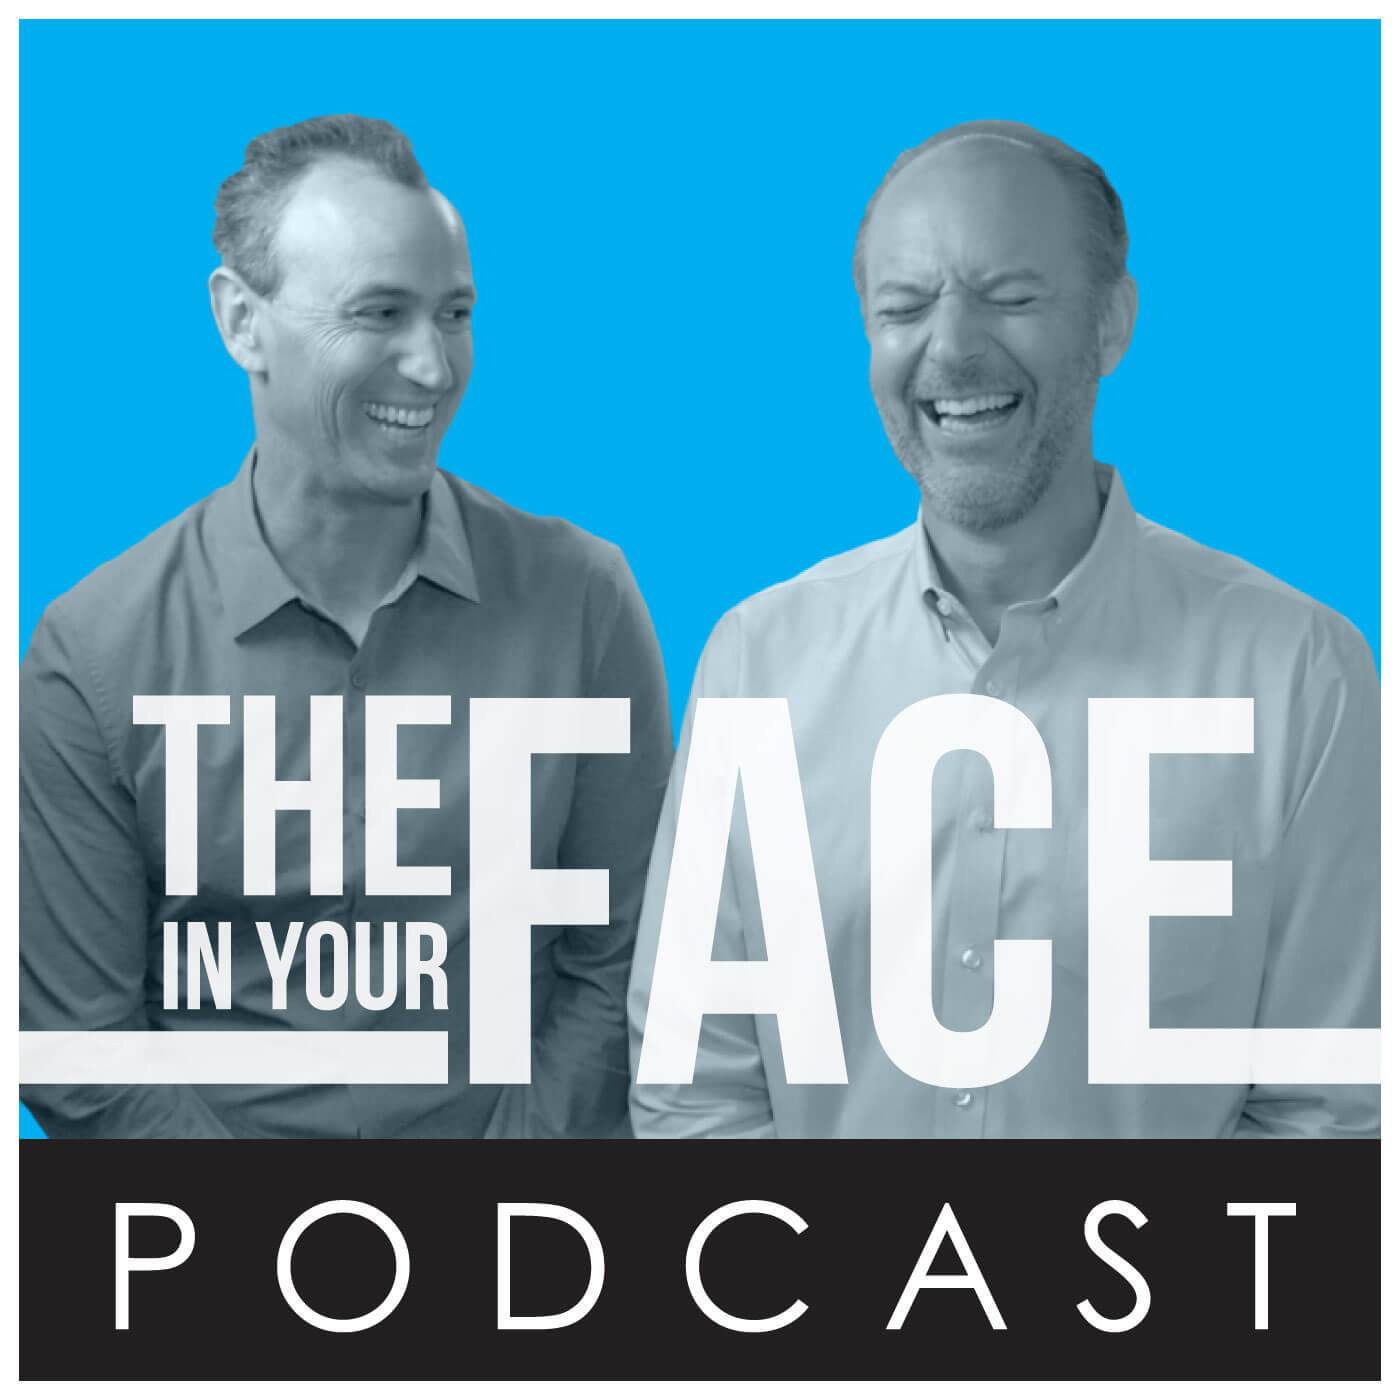 The In Your Face Podcast show art